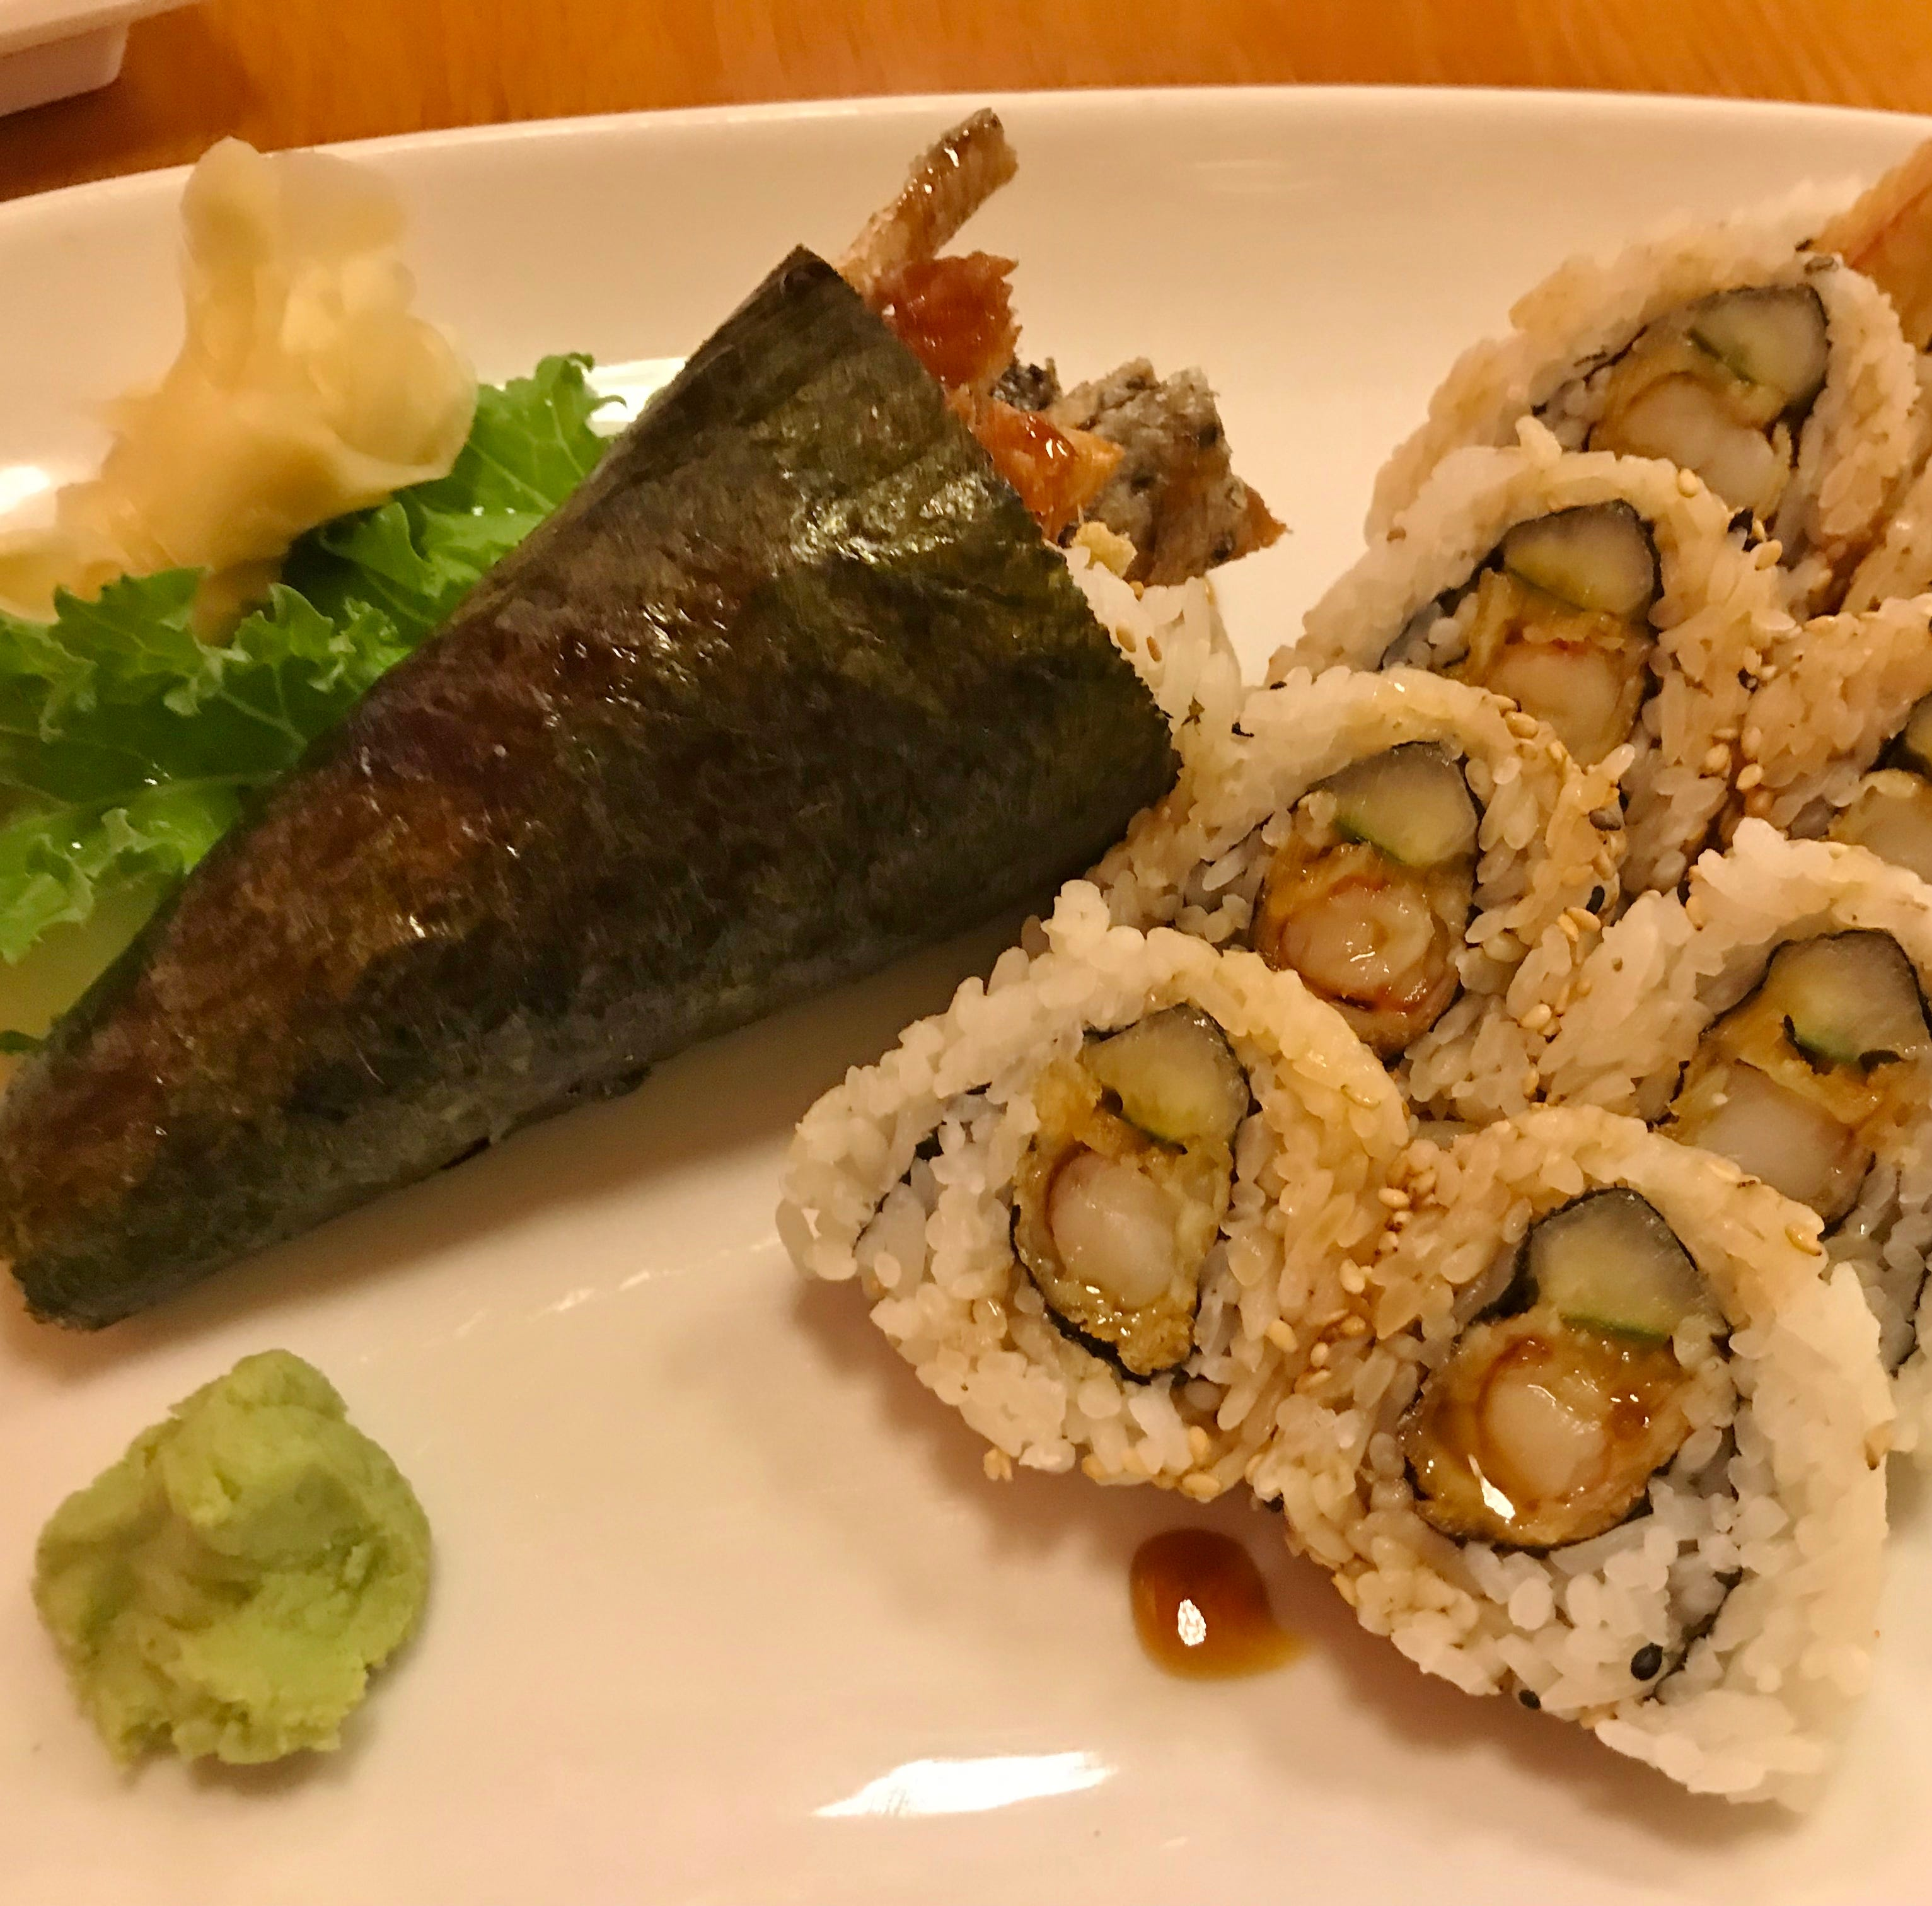 Sake Too Japanese & Thai Restaurant a welcome addition to Tradition in Port St. Lucie